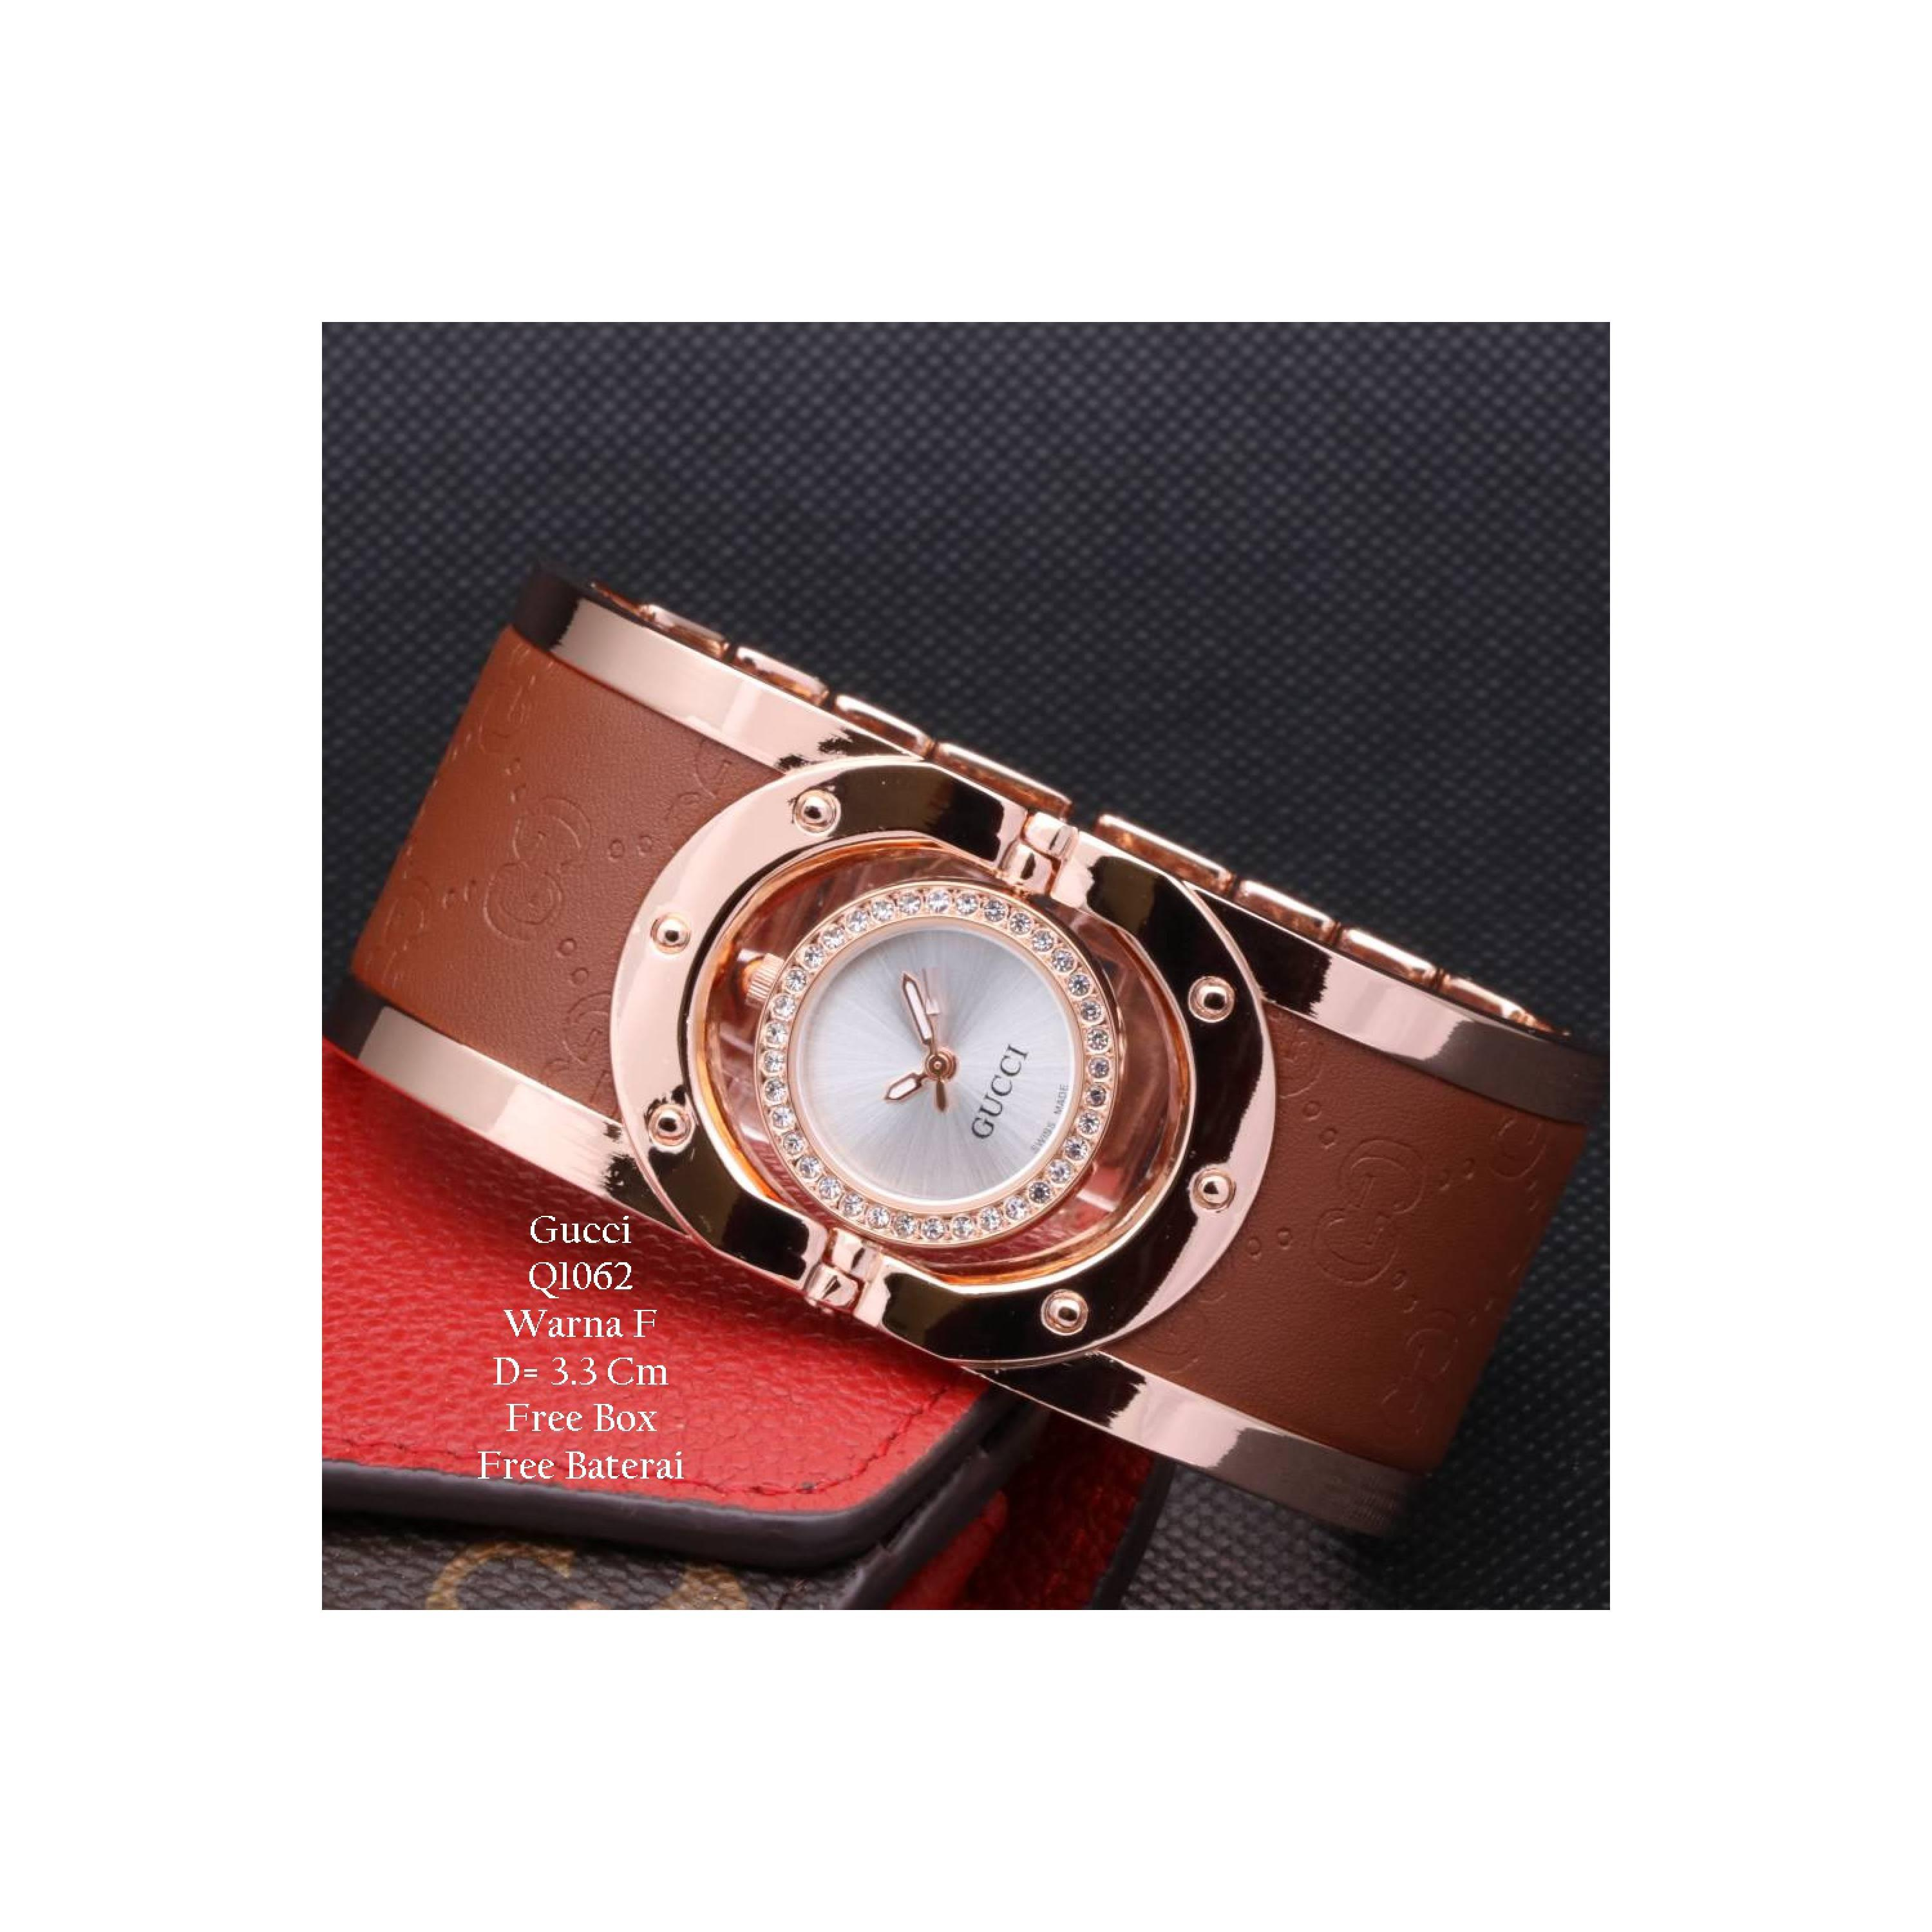 Jam Tangan Wanita Bonia S1106 Super4 Daftar Harga Terkini Black Bn10123 2537s Murah Gucci Asca Rose In Brown Color